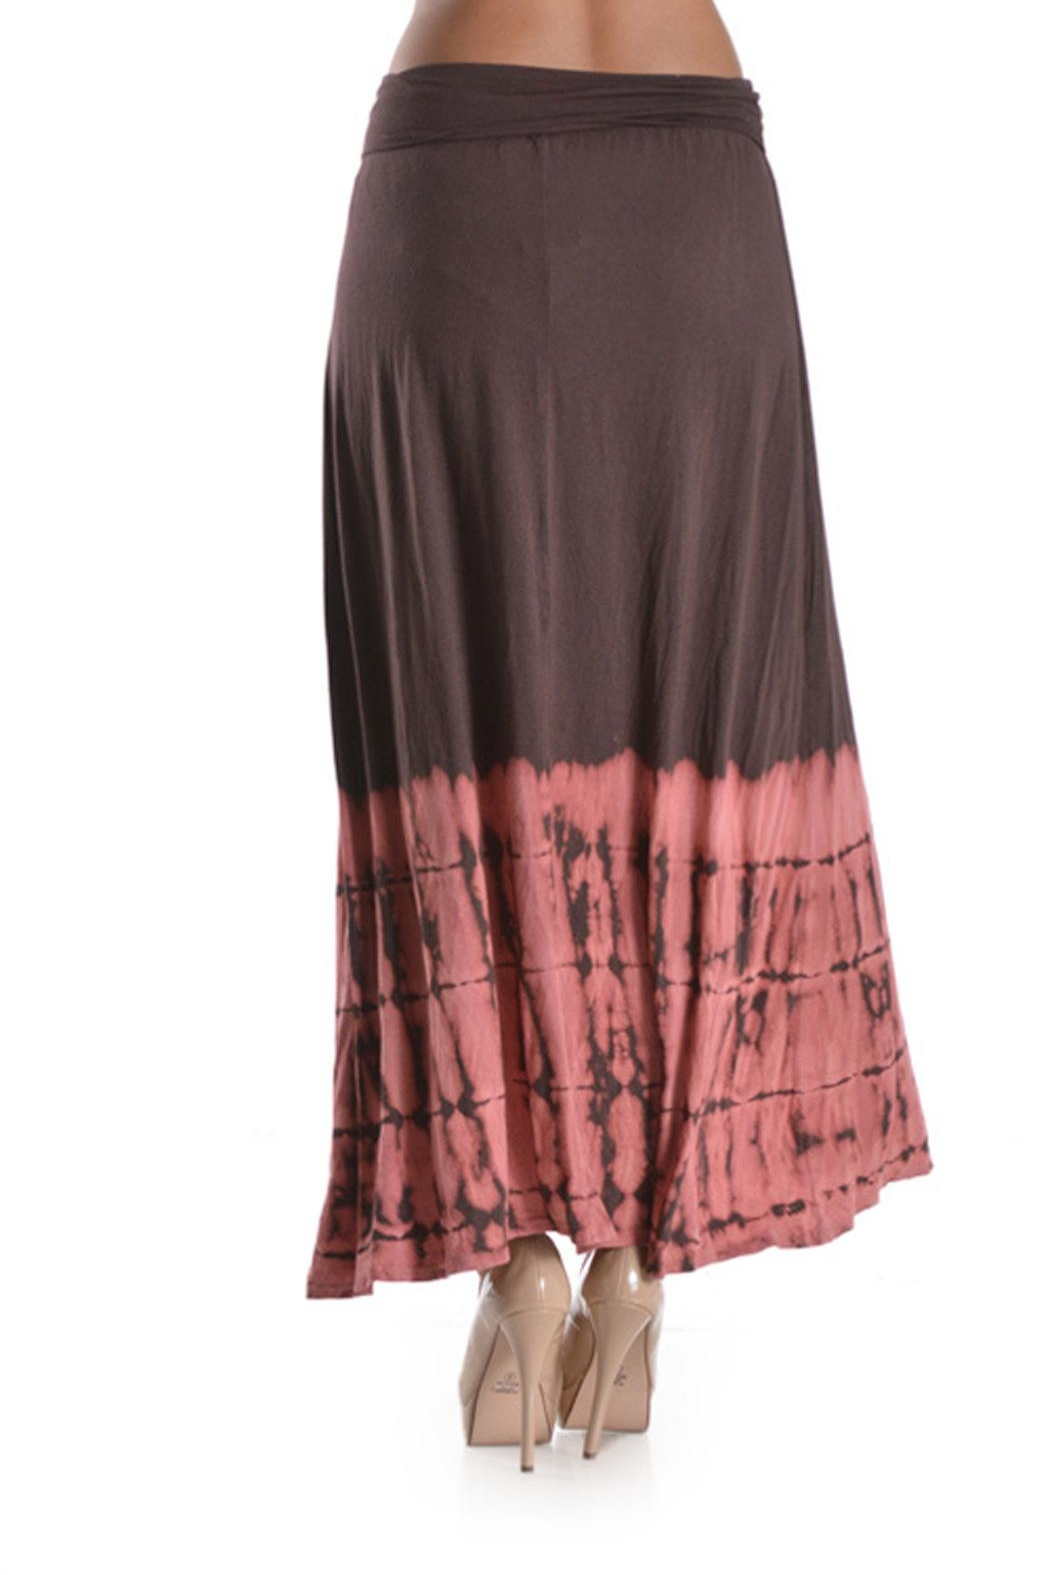 T Party Tie-Dye Mocha-Coral Maxi-Skirt - Side Cropped Image